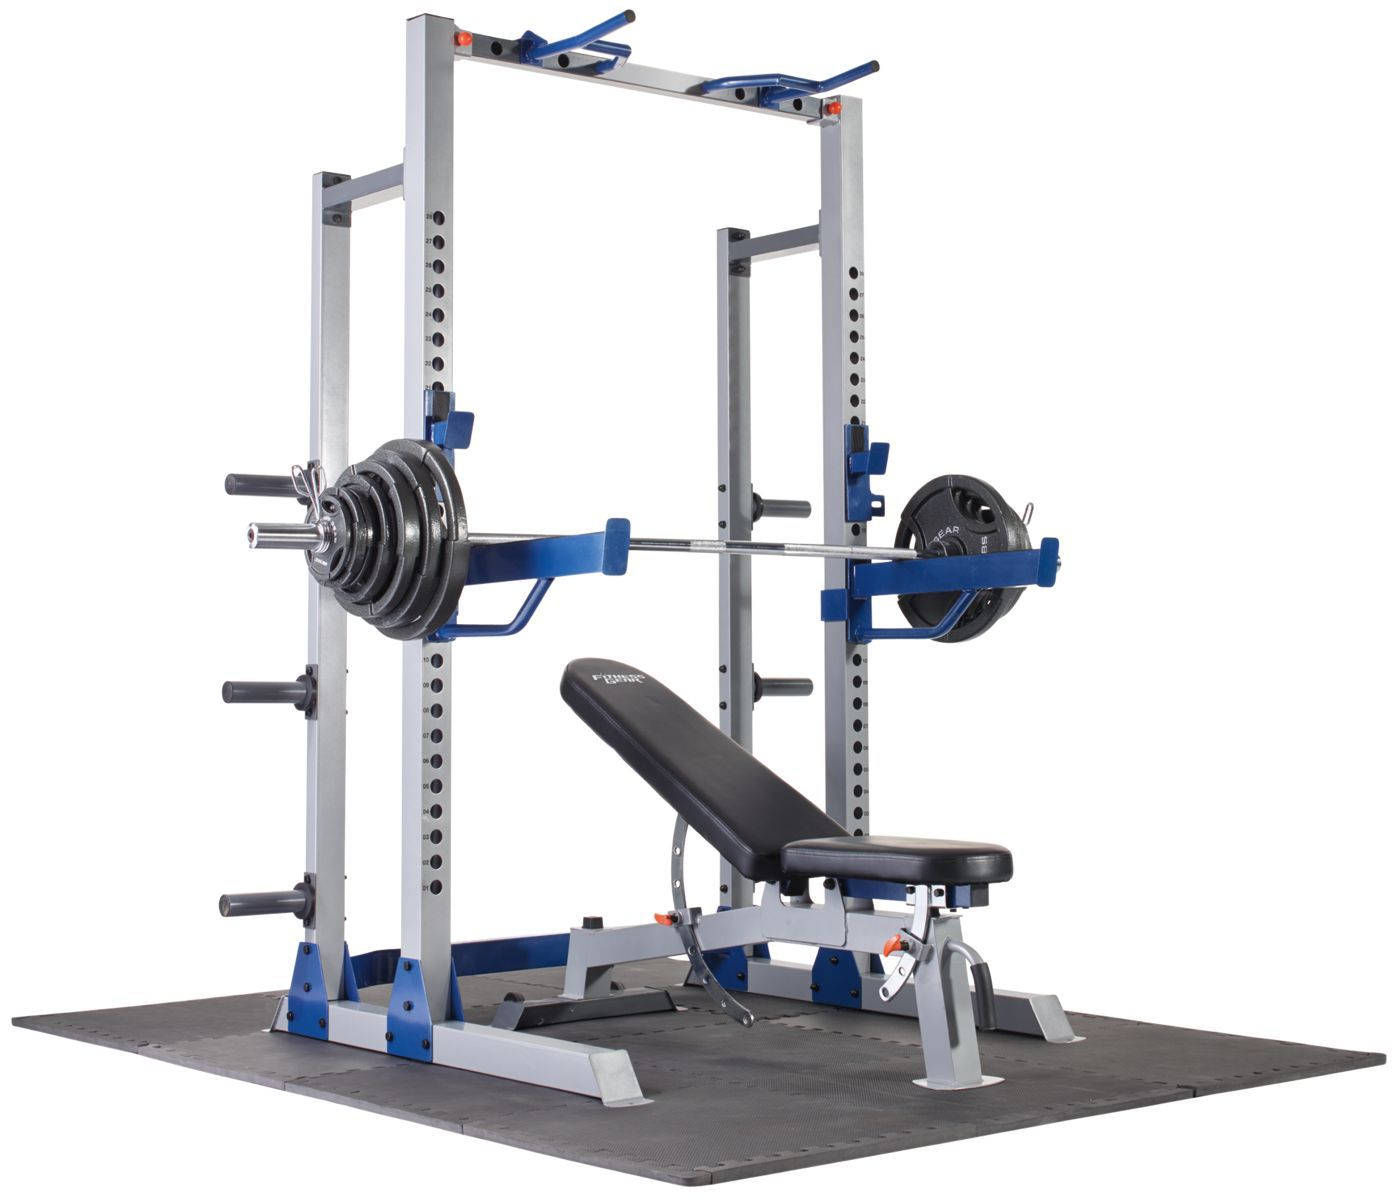 Pin by Ant Till on Home Weight Room Half rack, Workout